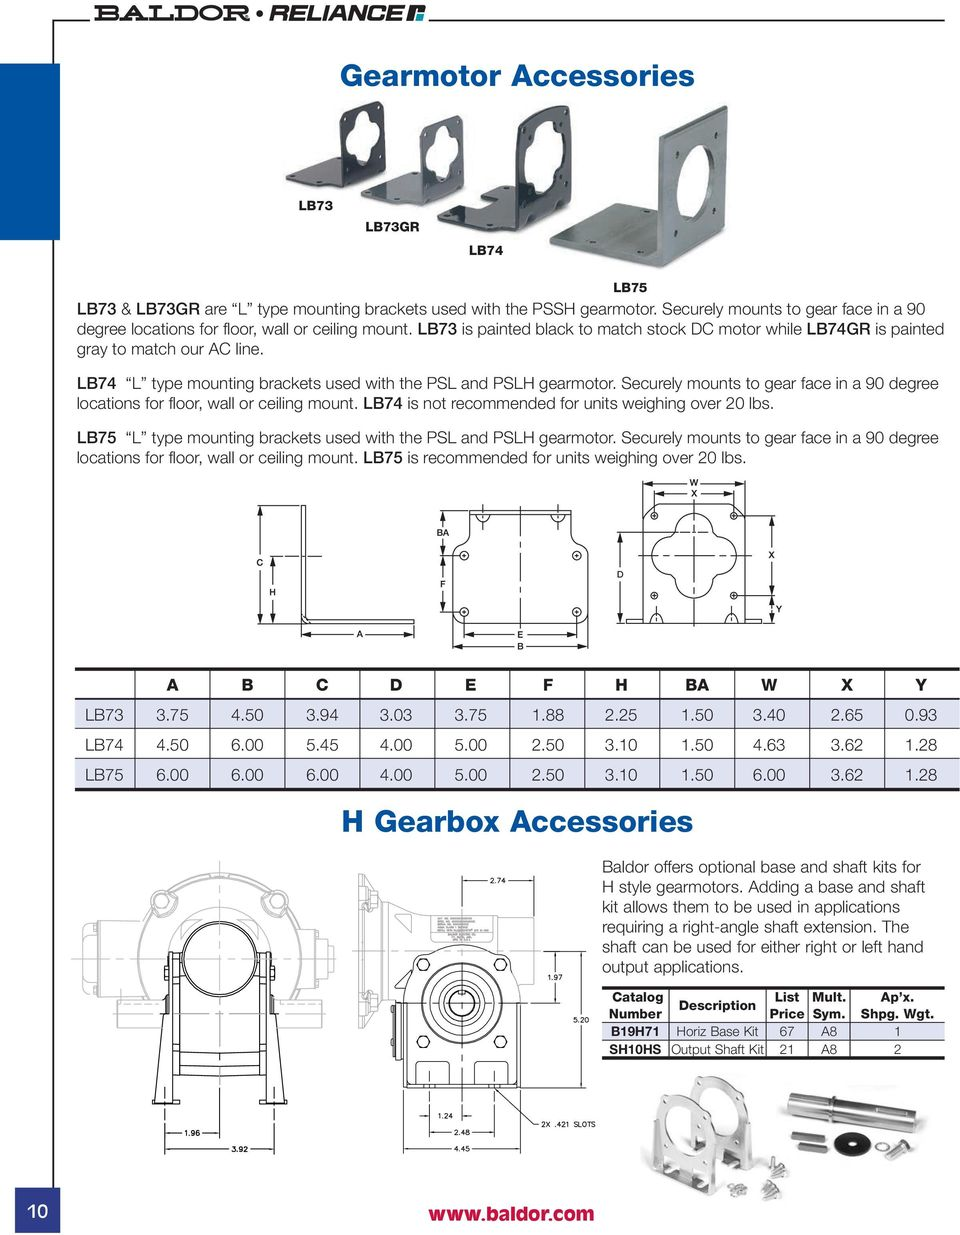 Gearmotors Speed Reducers Pdf Lb75 Wiring Diagram Lb74 L Type Mounting Brackets Used With The Psl And Pslh Gearmotor Securely Mounts To